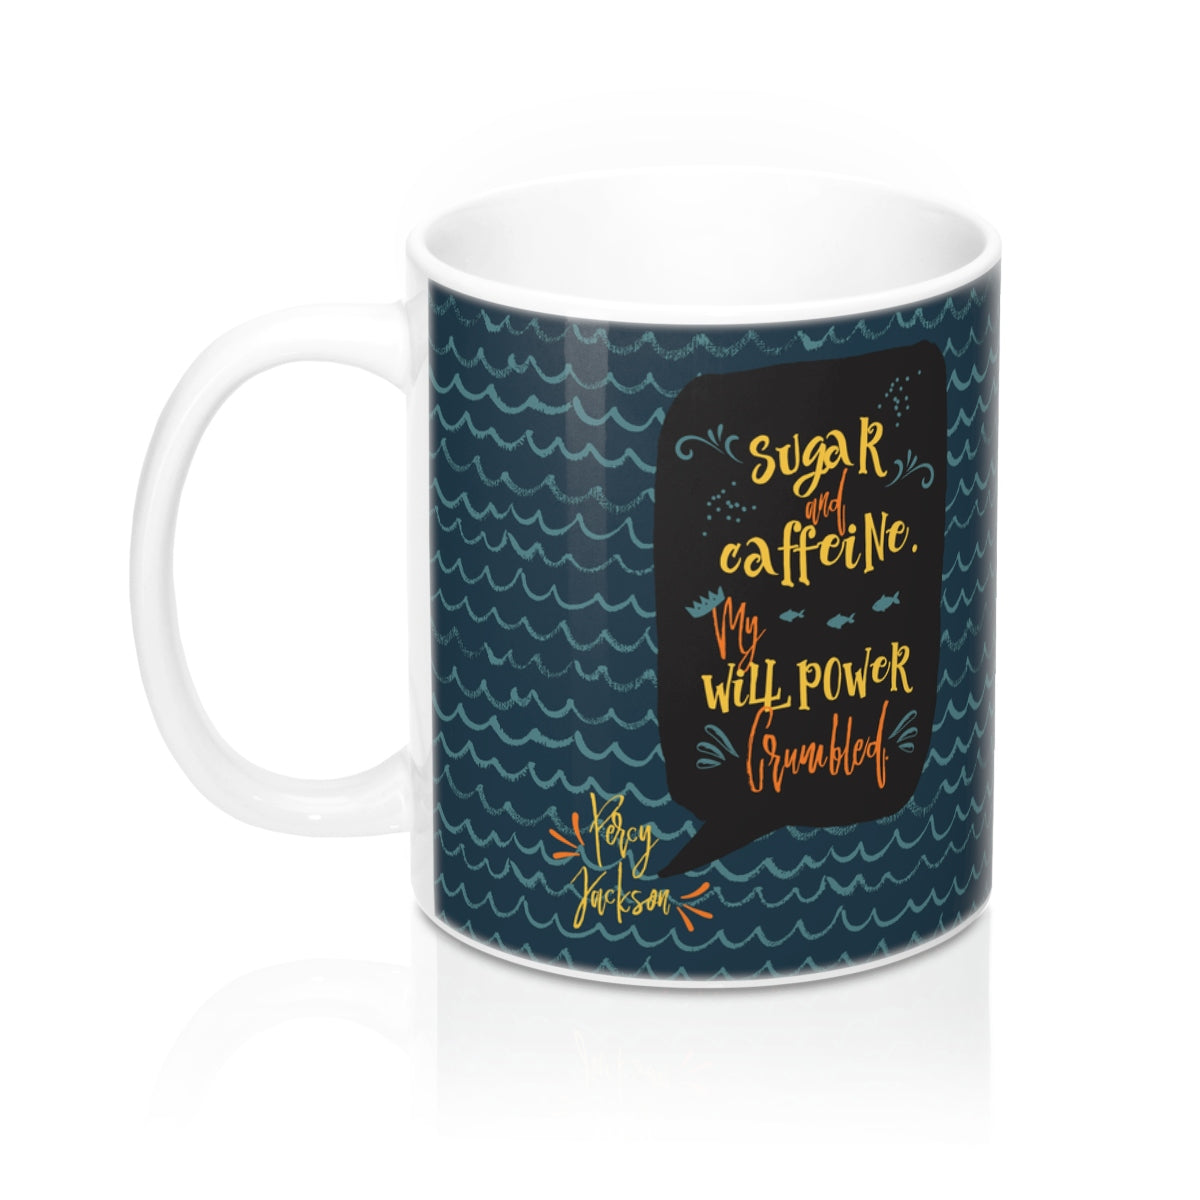 Sugar and caffeine... Percy Jackson Quote Mug - LitLifeCo.